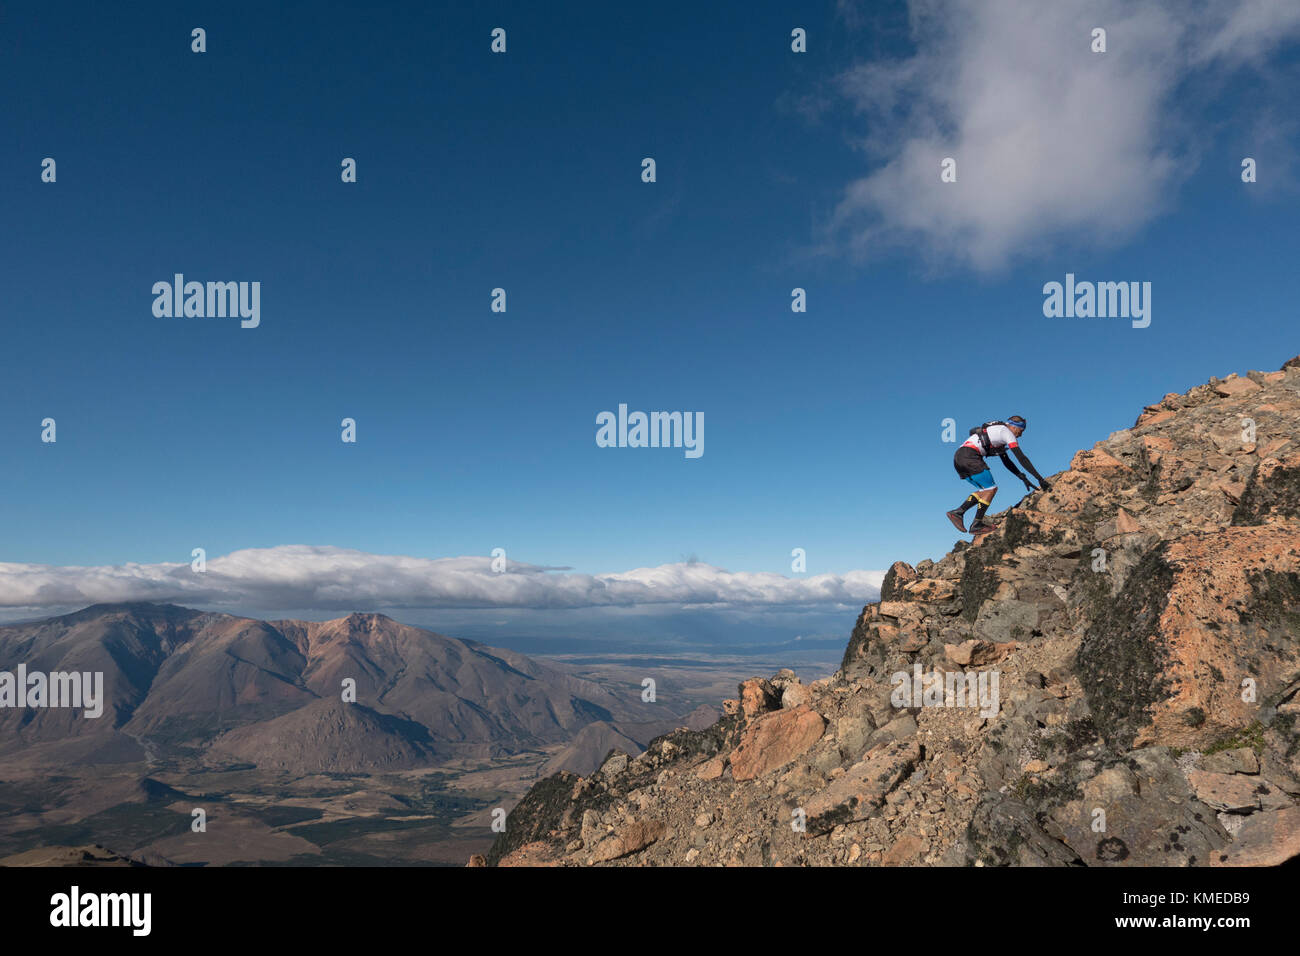 Man climbing rocky mountain against clouds and sky, Esquel, Chubut, Argentina - Stock Image